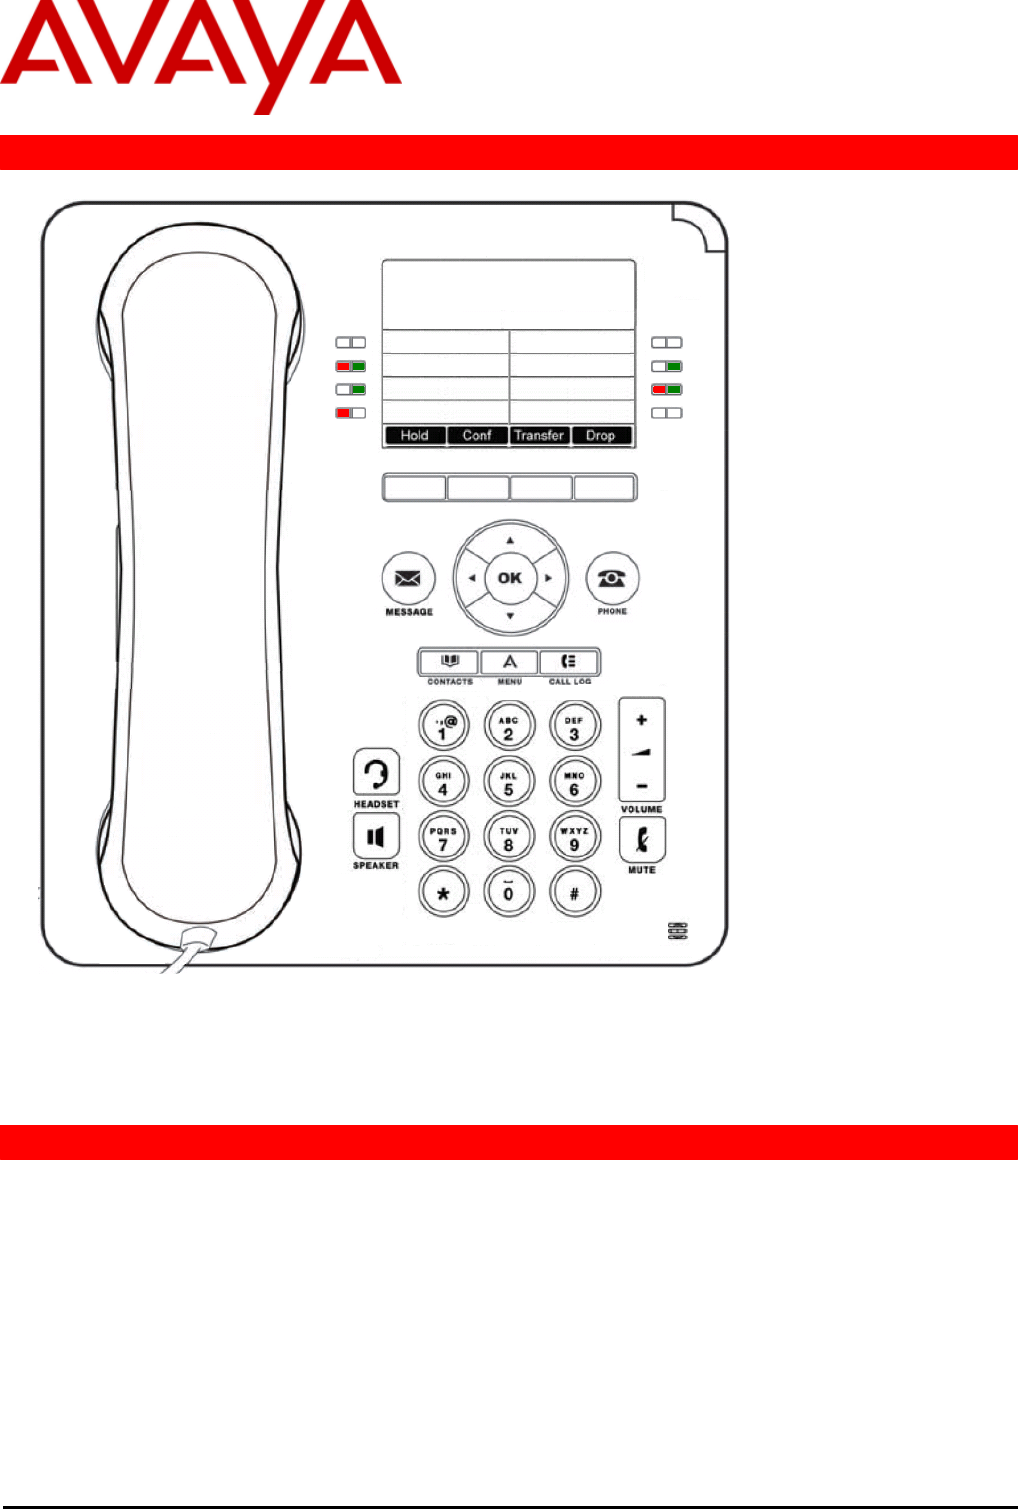 download avaya phone features manual harutracker Free Ford Wiring Diagrams free-wiring-diagrams.weebly.com cadillac